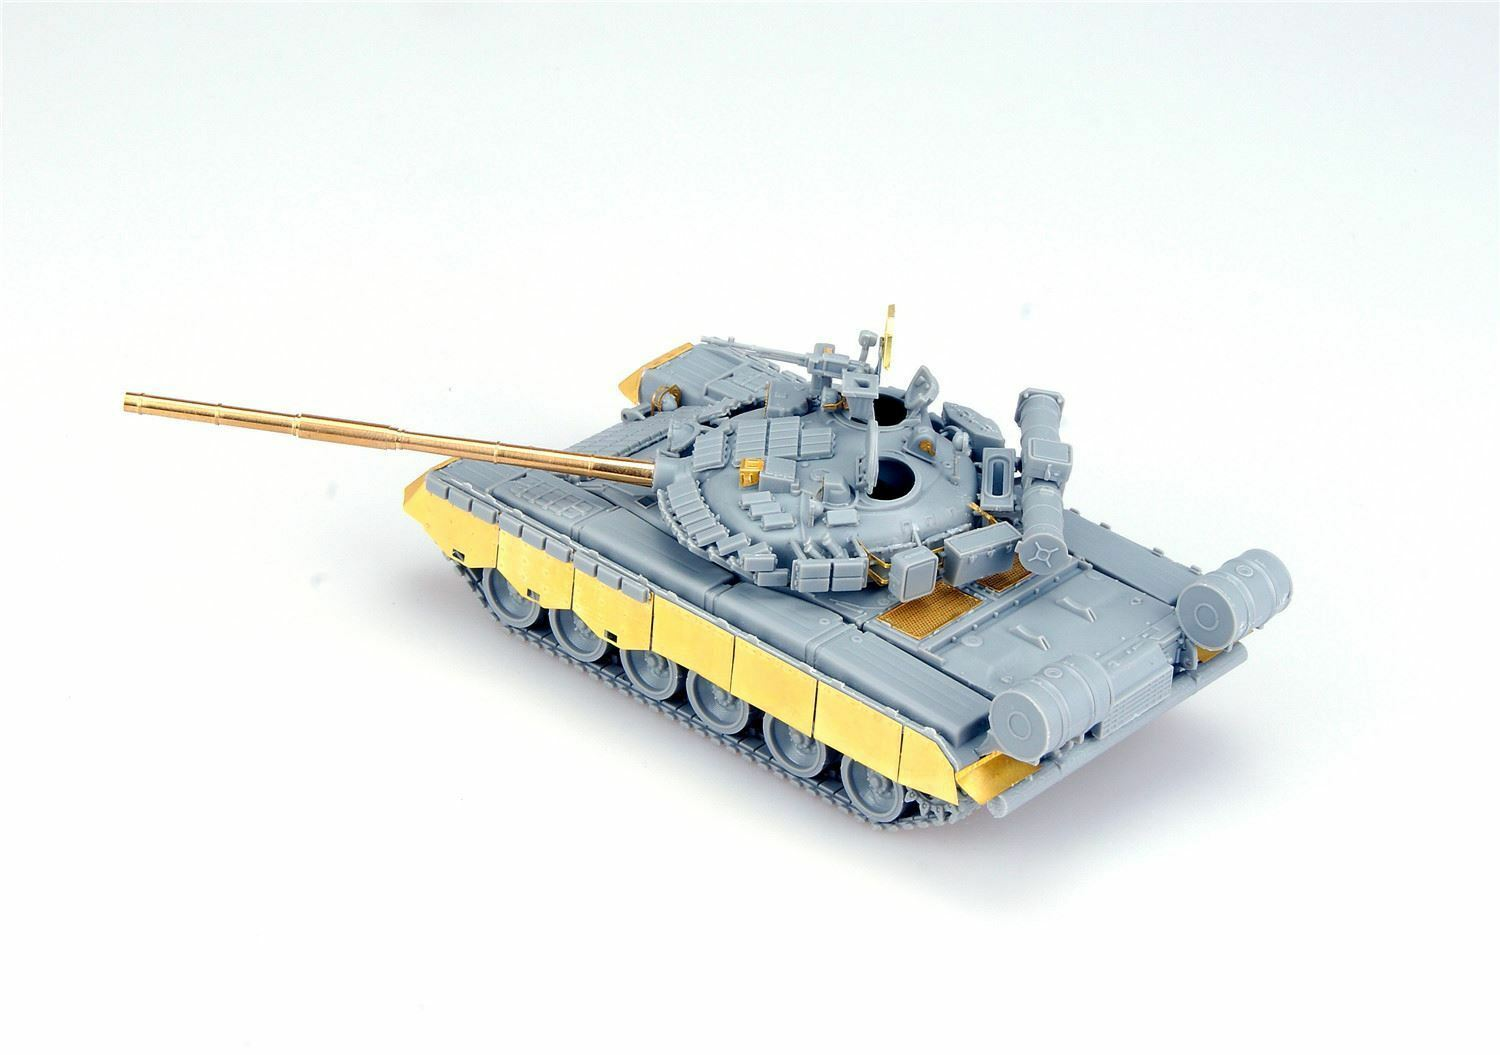 T-80BV T-80BV T-80BV MAIN BATTLE TANK 1/72 Modelcollect 098126